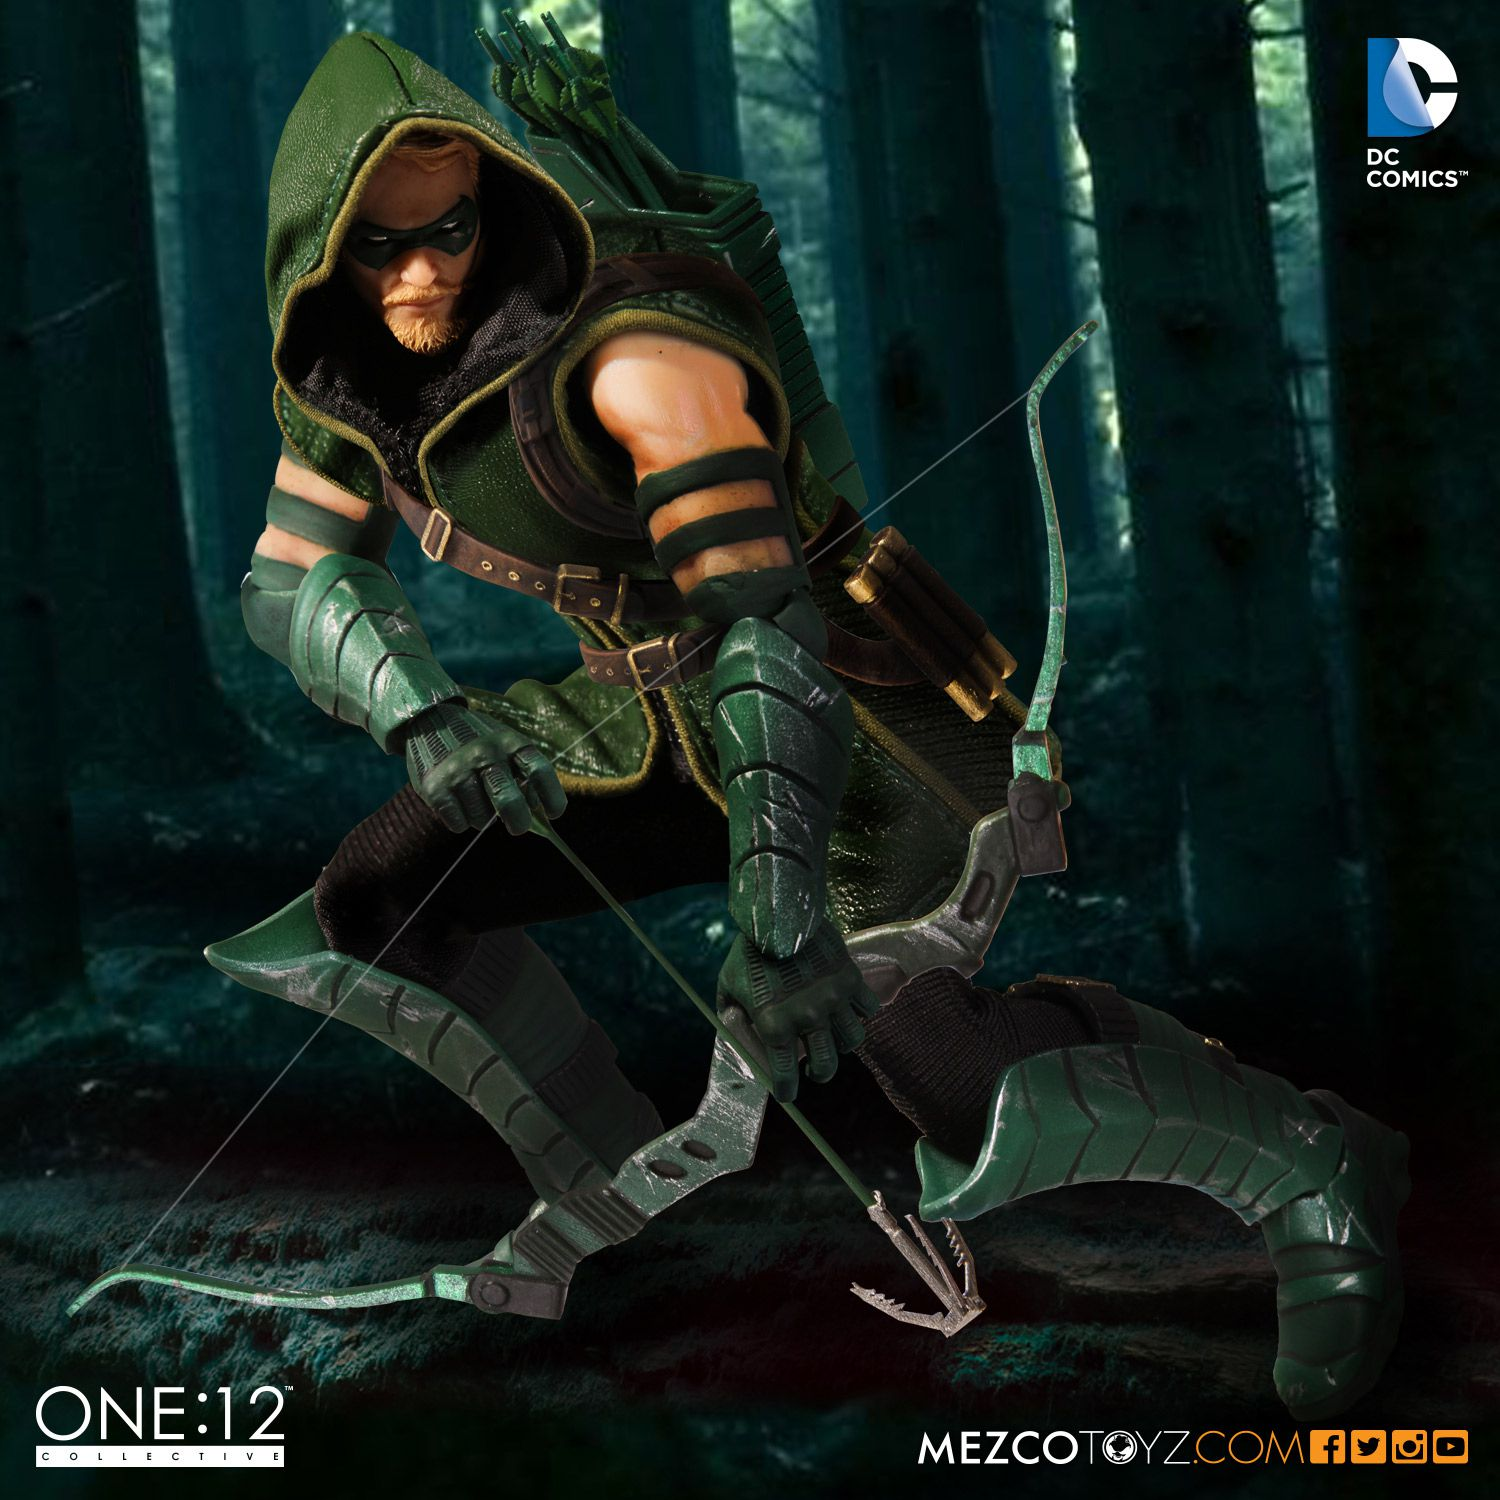 Green arrow images png black and white One:12 Collective DC Comics Green Arrow – Mezco Toyz png black and white